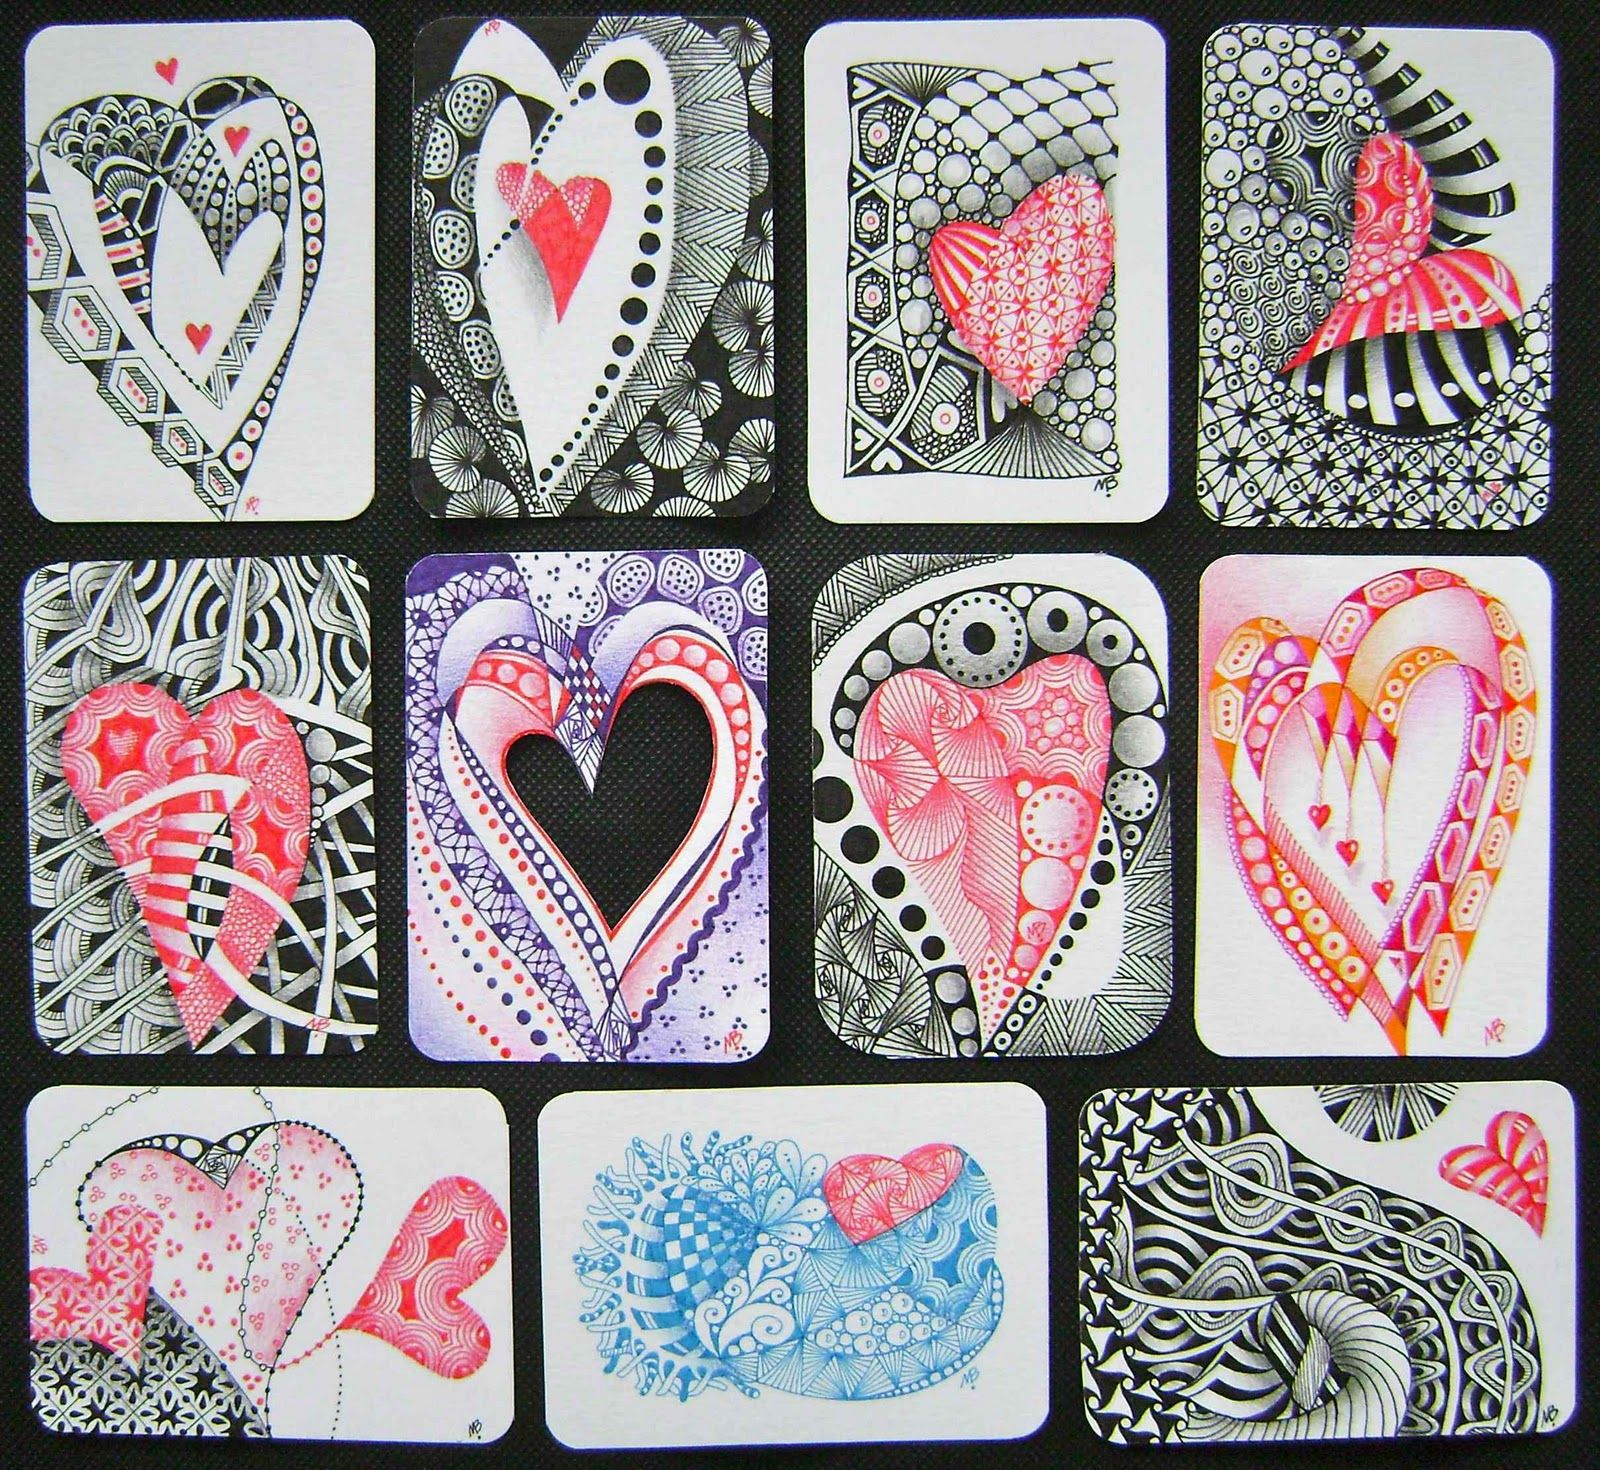 heart zentangle i especially love the heart in the middle column